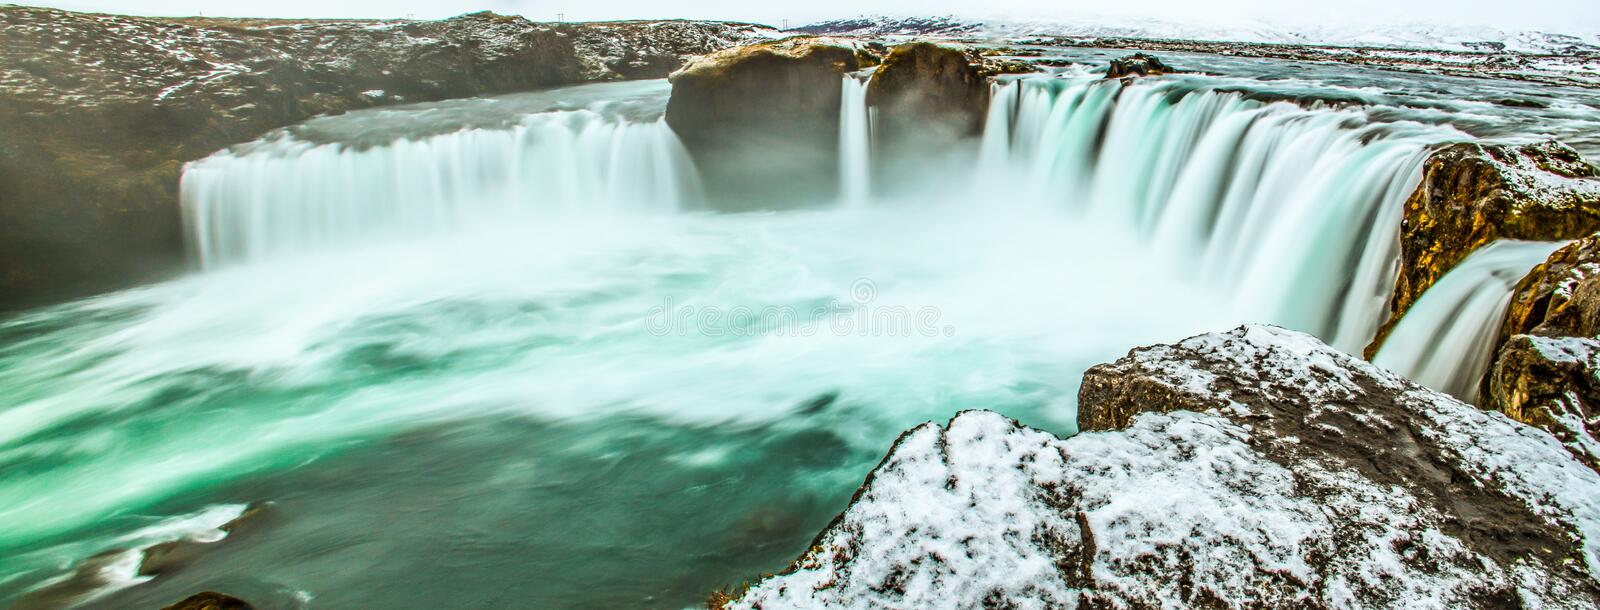 Majestic winter morning panoramic scene on the Godafoss, Waterfall of god, Iceland, Europe. Natural beauty as background stock photo